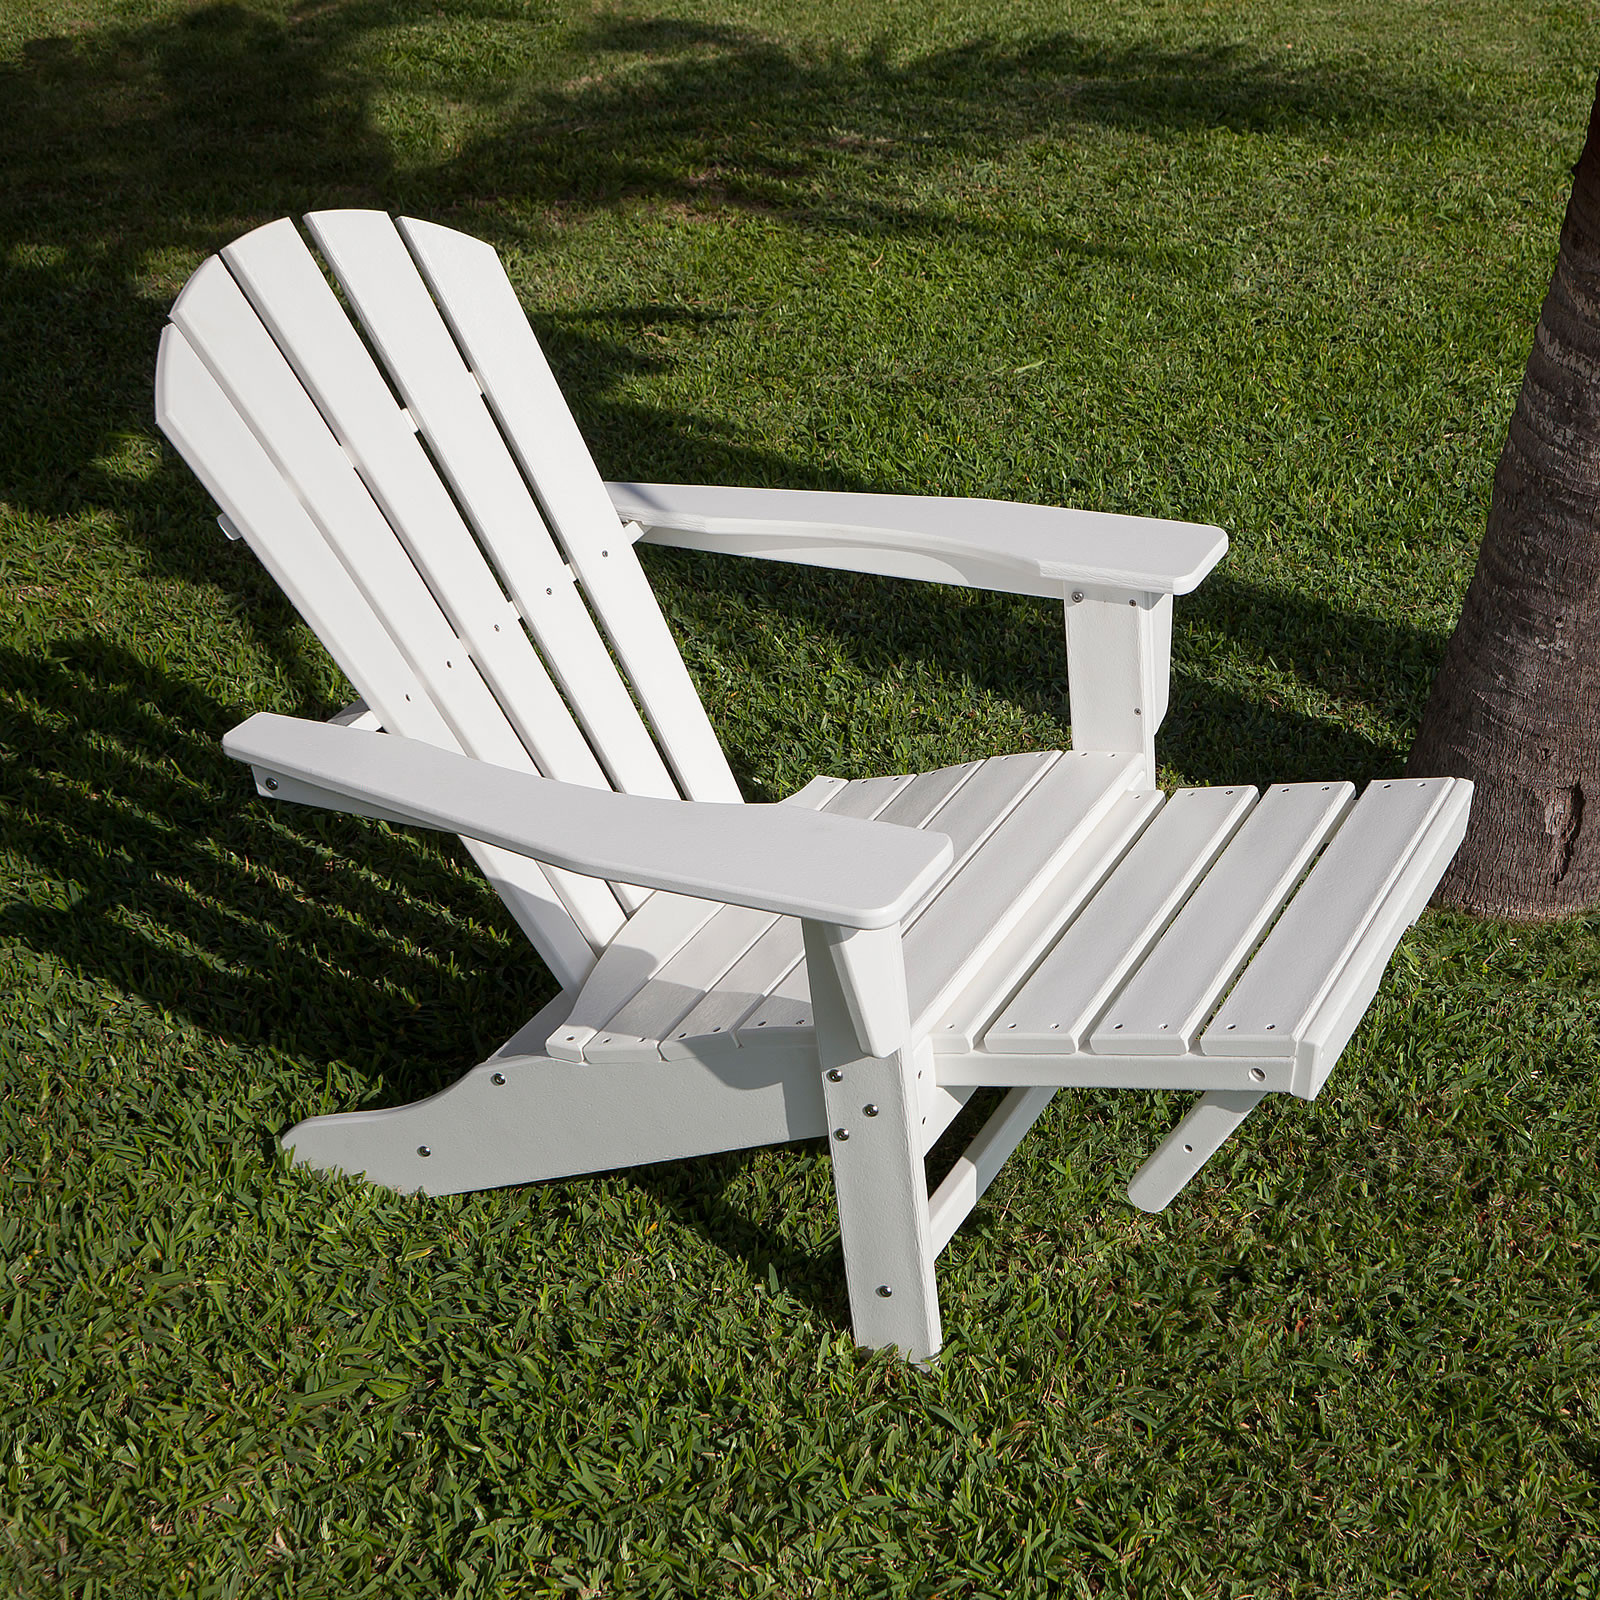 South beach ultimate adirondack palm coast big daddy for Breezy beach chaise